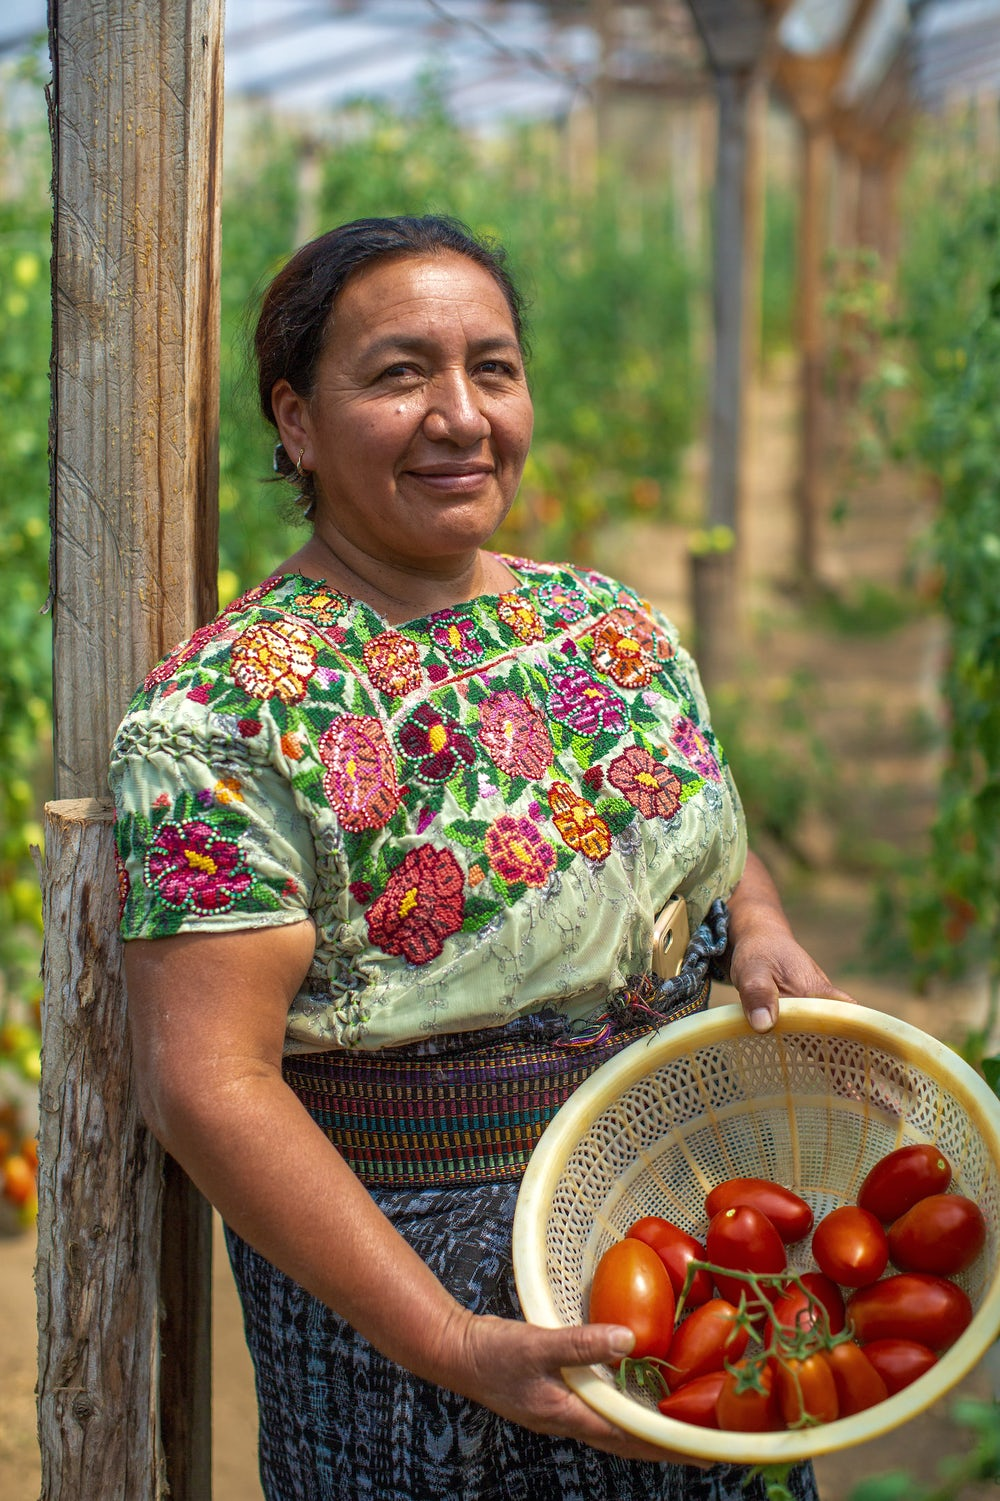 A woman smiles at the camera, holding a basket of tomatoes she harvested from her greenhouse in Guatemala